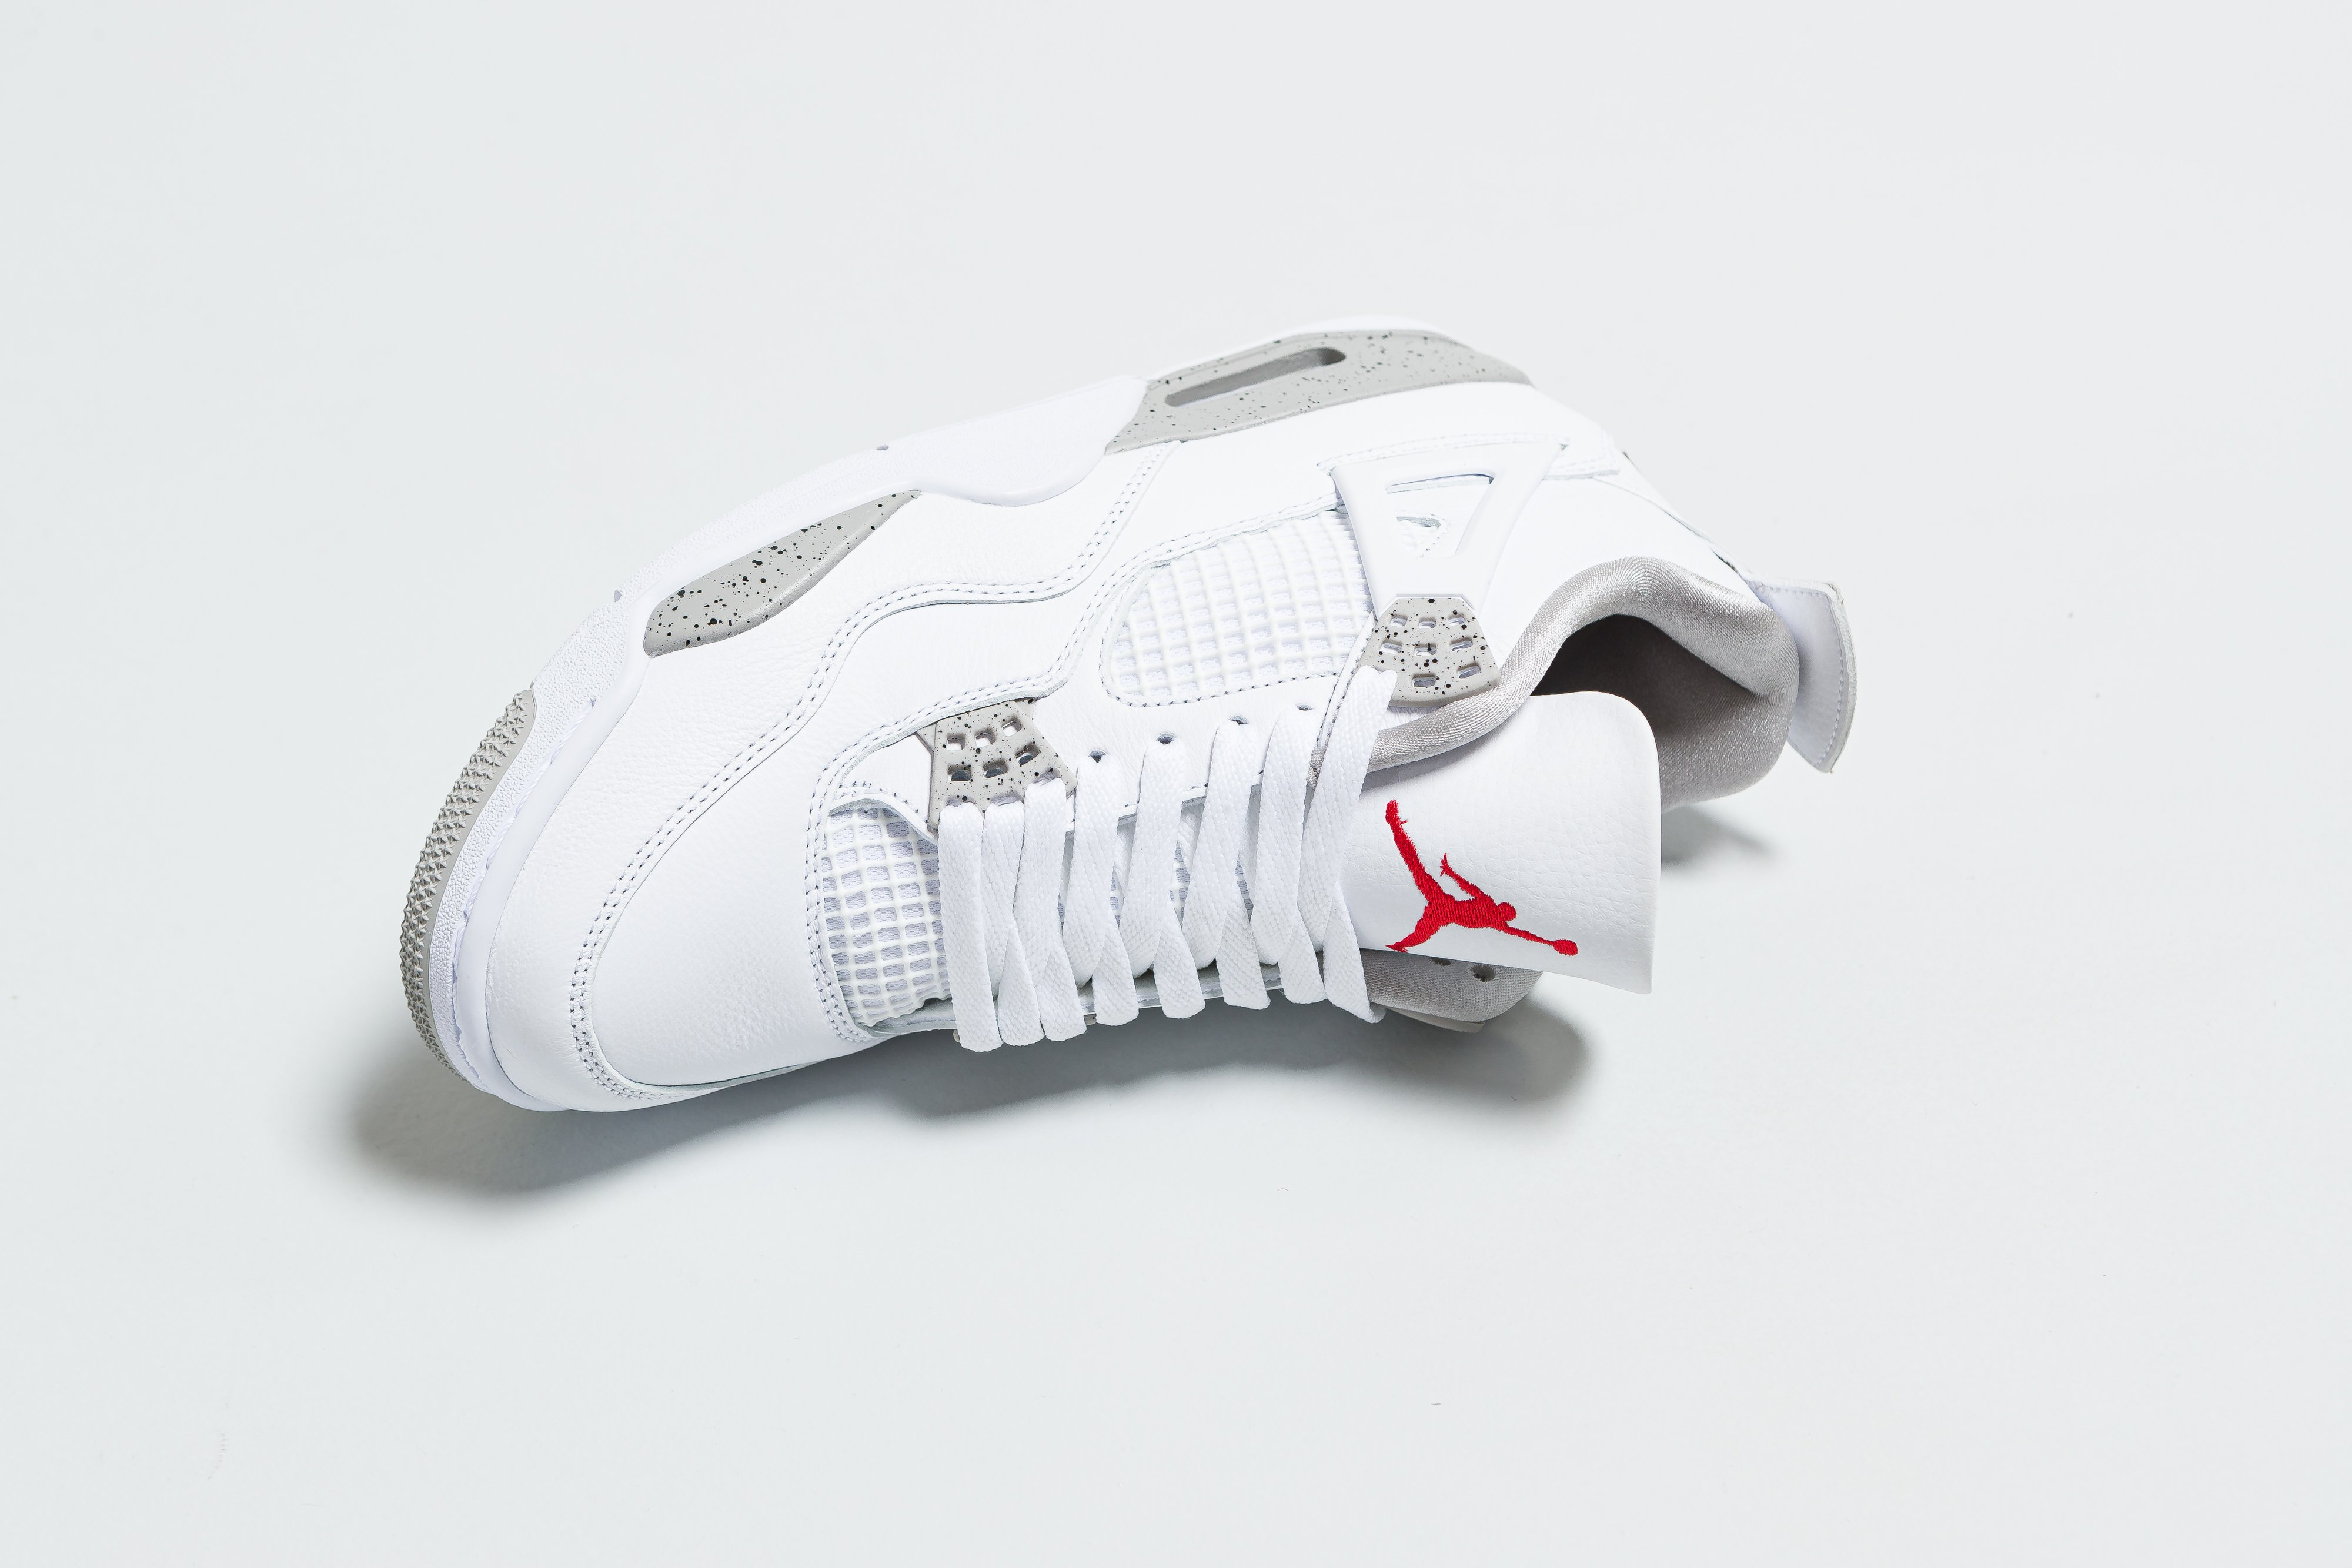 Up There Launches - Air Jordan 4 Retro - White/Tech Grey-Black-Fire Red 'Reverse Oreo'